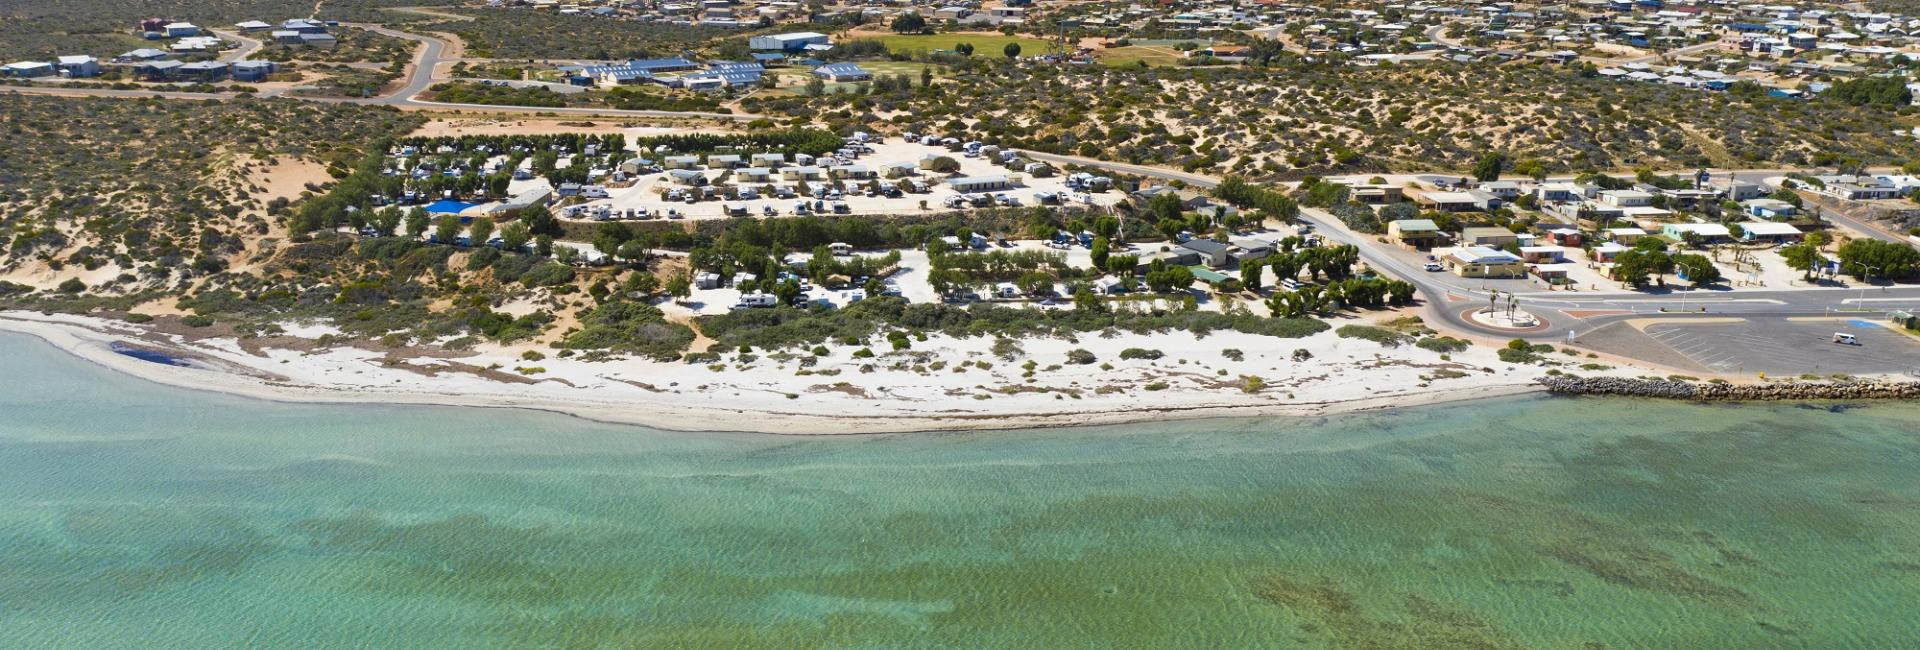 Denham aerial town beach Shark Bay